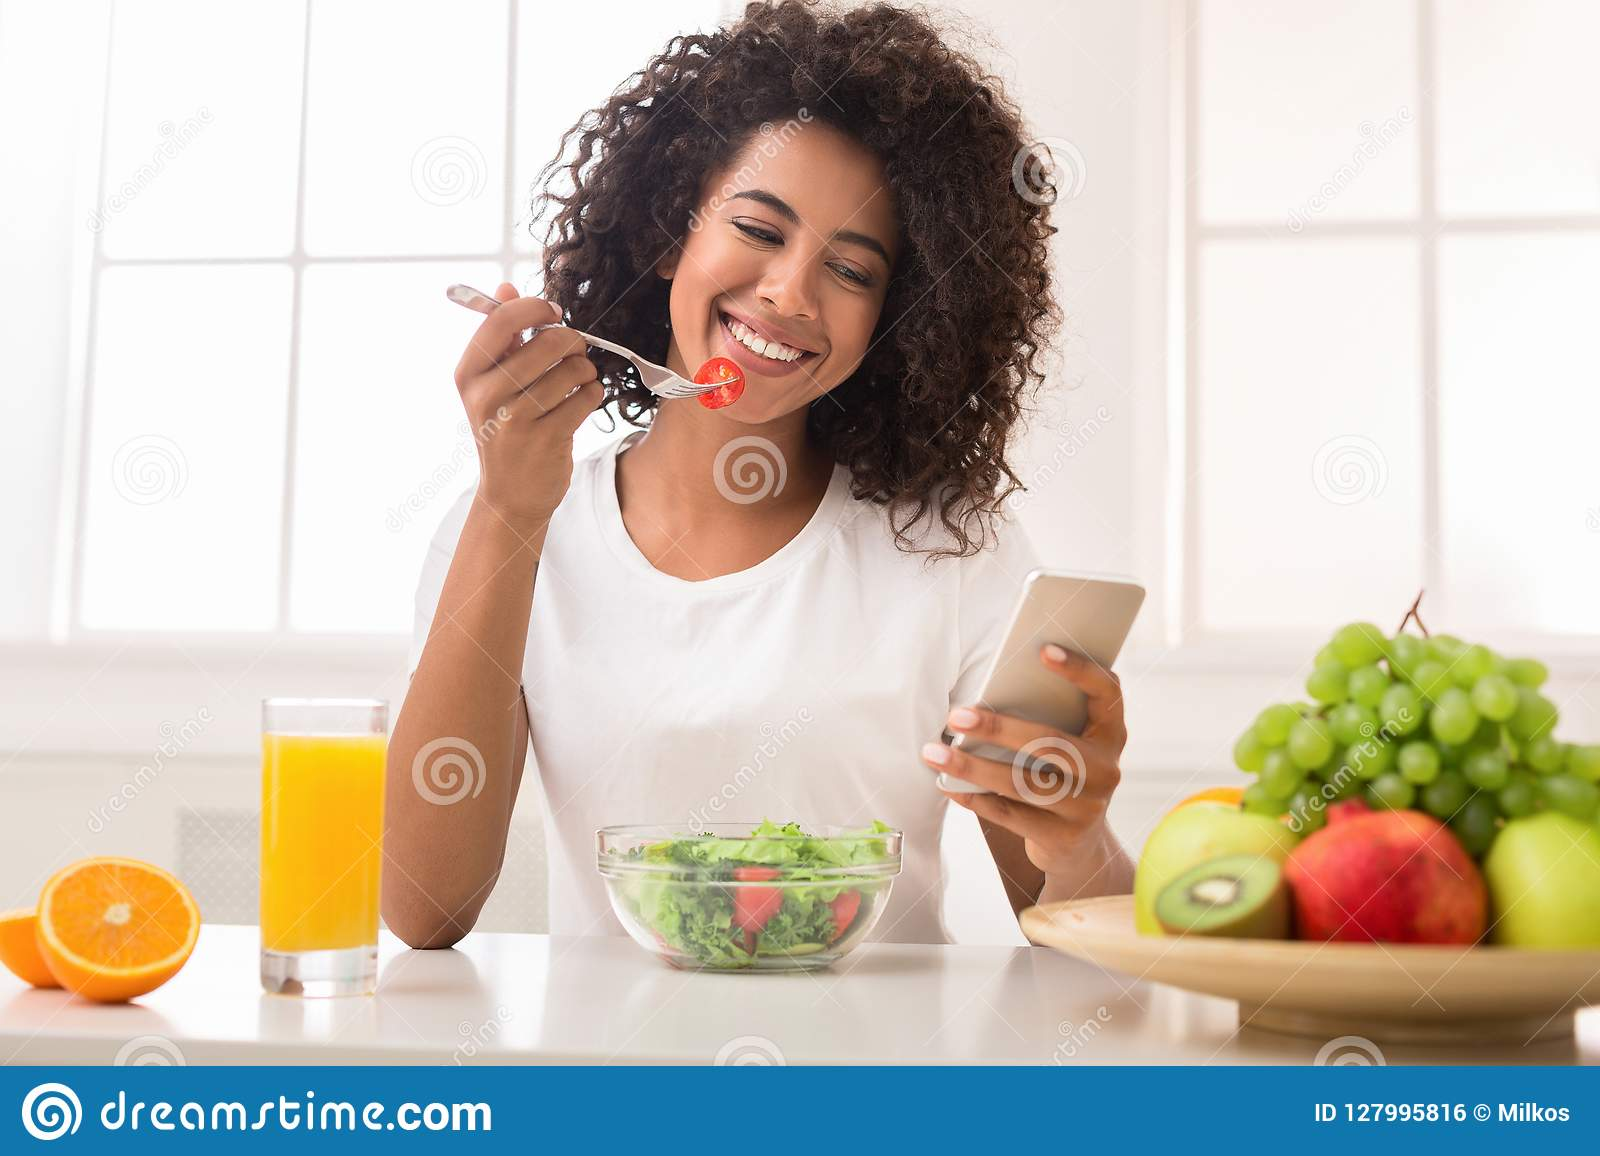 Happy black woman texting on smartphone while eating salad